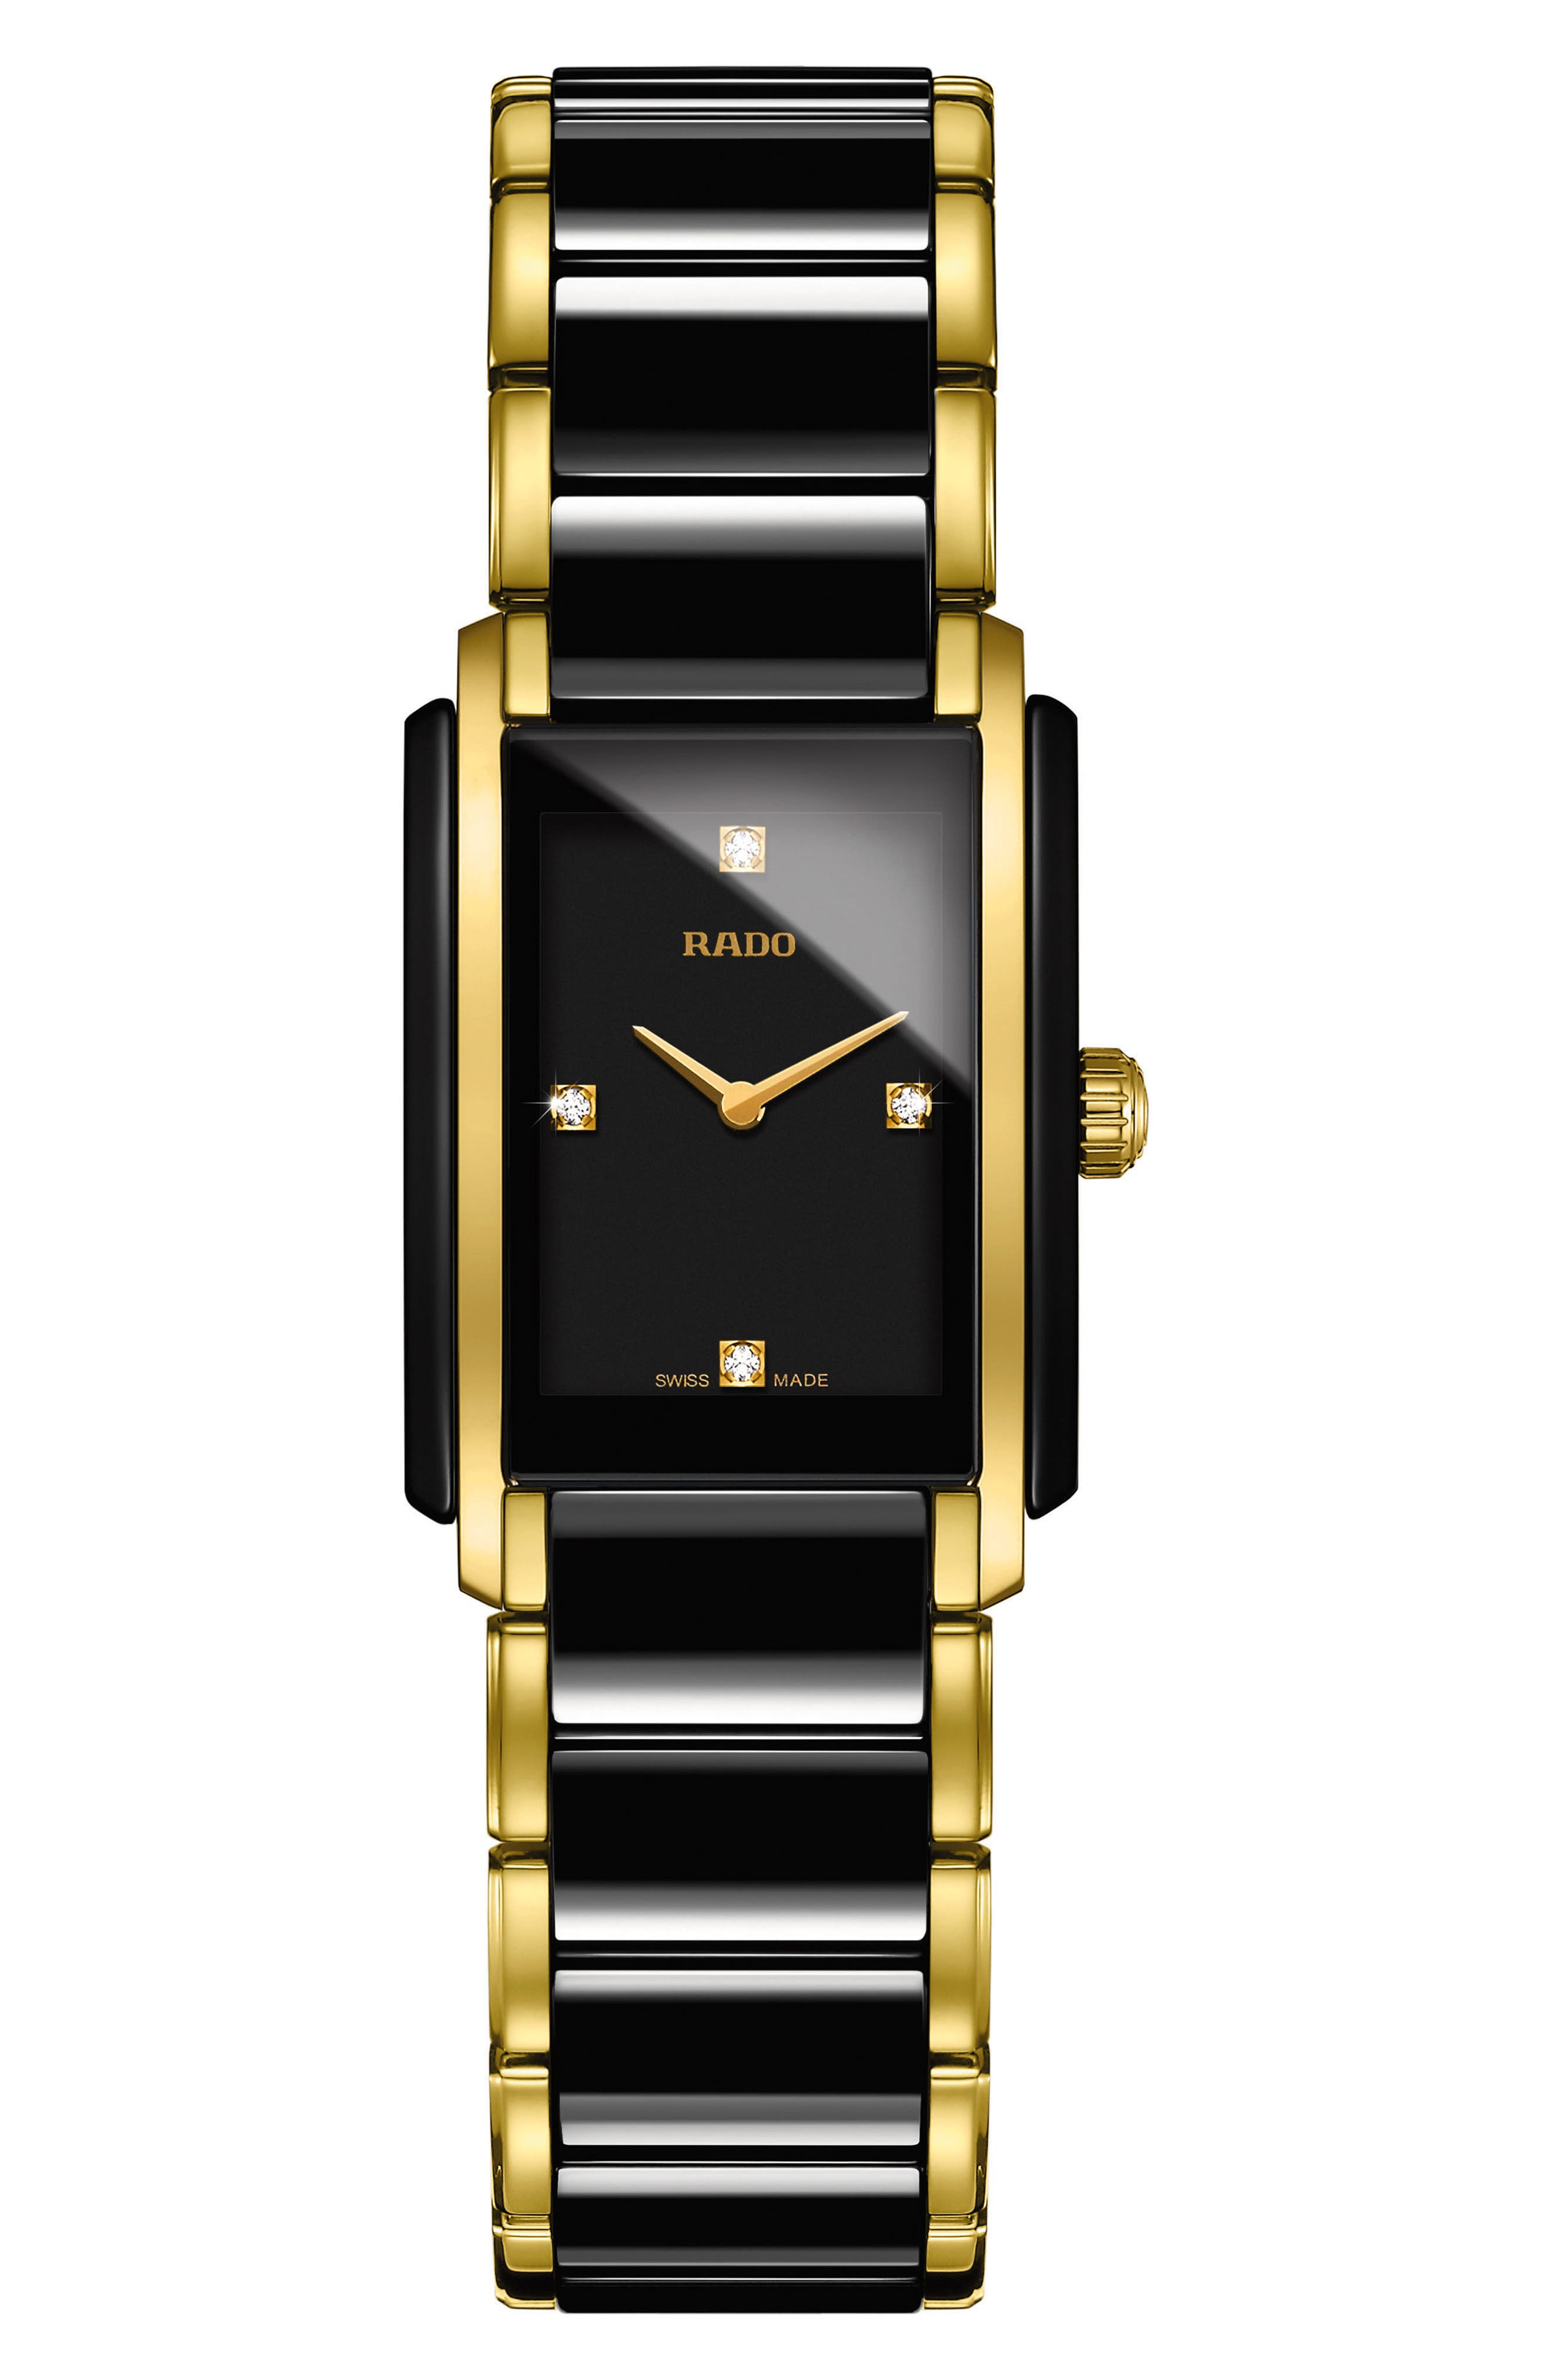 RADO Integral Diamonds Tank Bracelet Watch, 22mm x 33mm